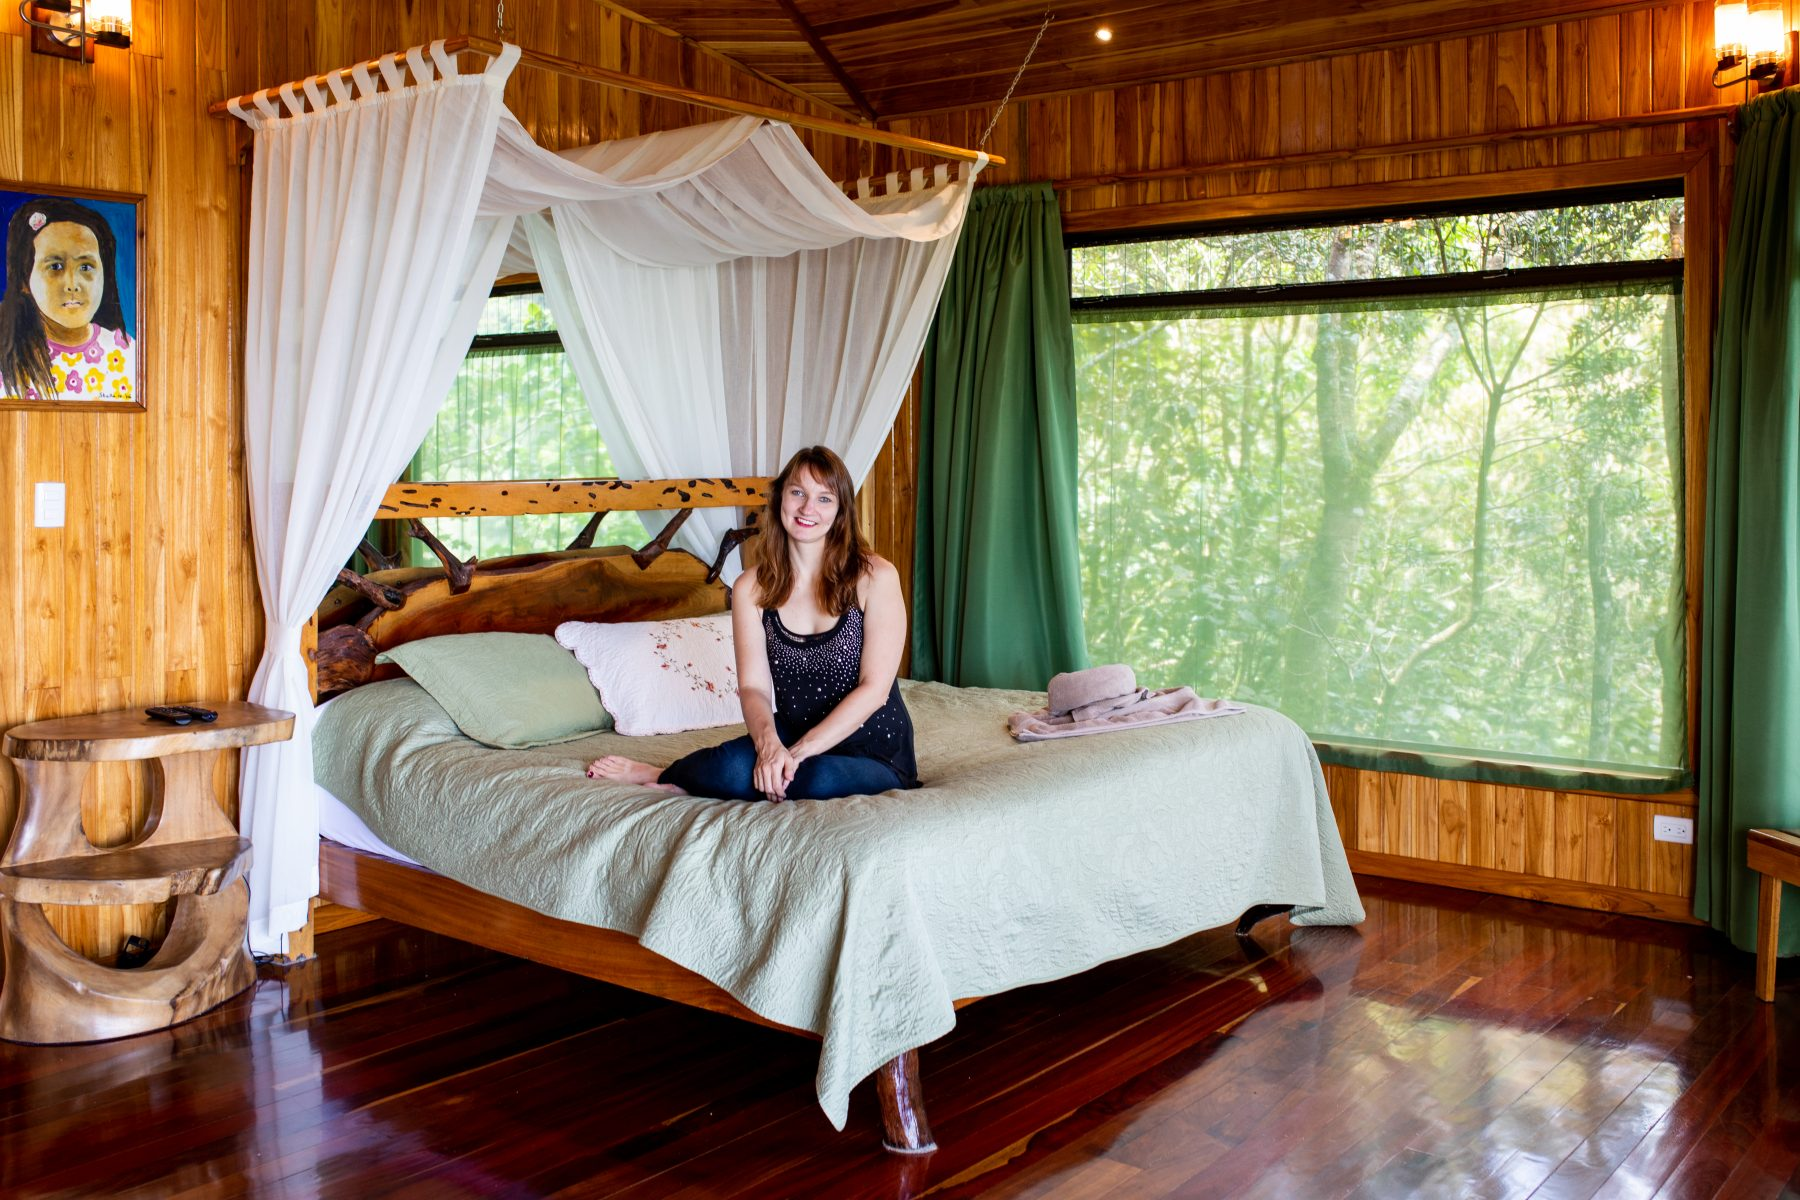 Fulfill This Bucket List Dream!  Stay in a Magical Treehouse for 4 Nights FREE